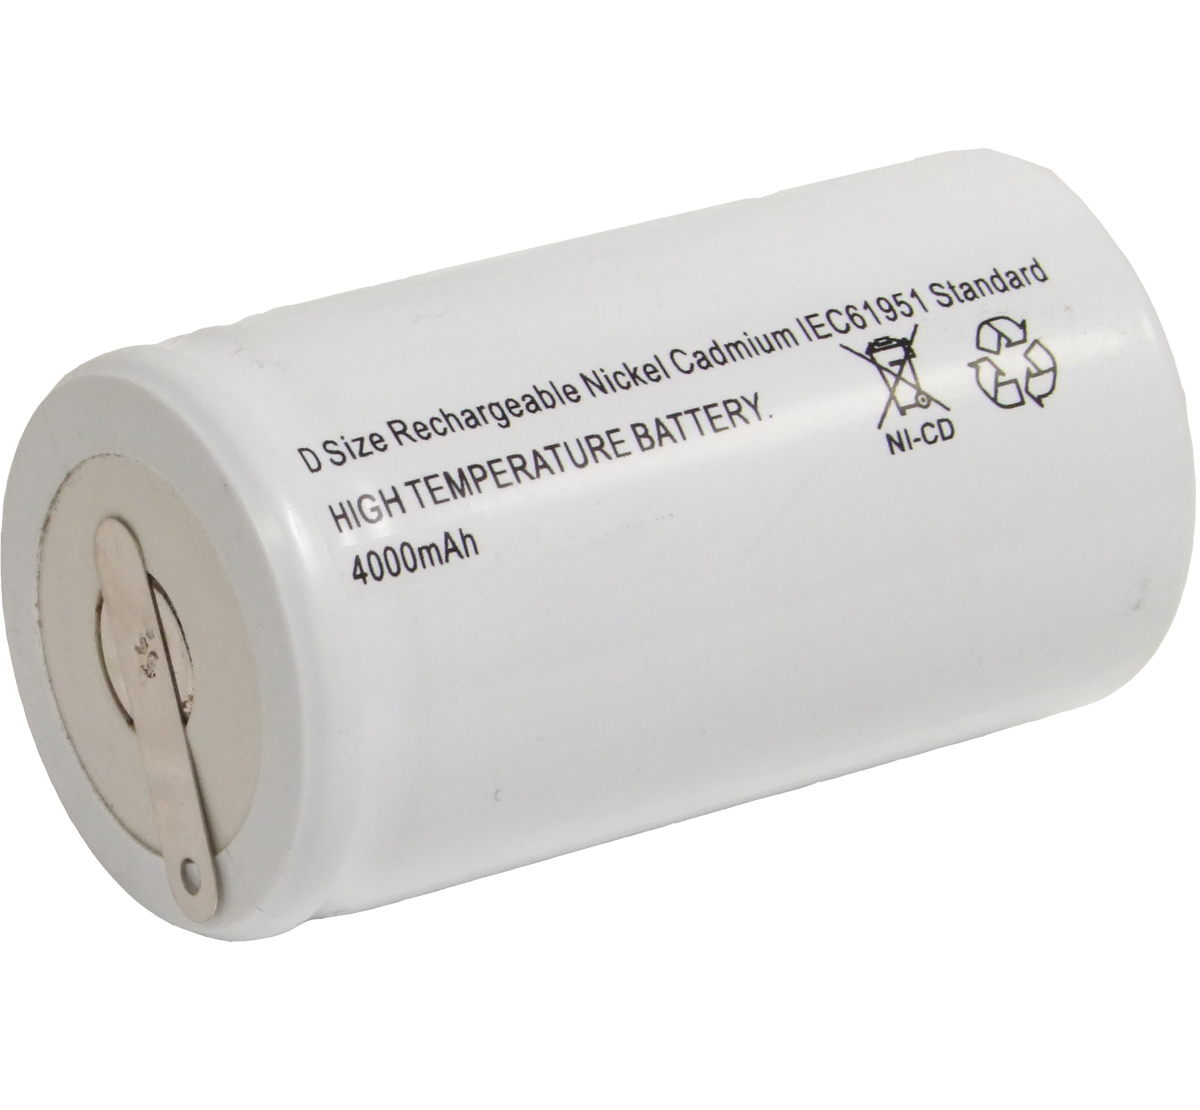 Yuasa 1DH4.0T Emergency Lighting Battery